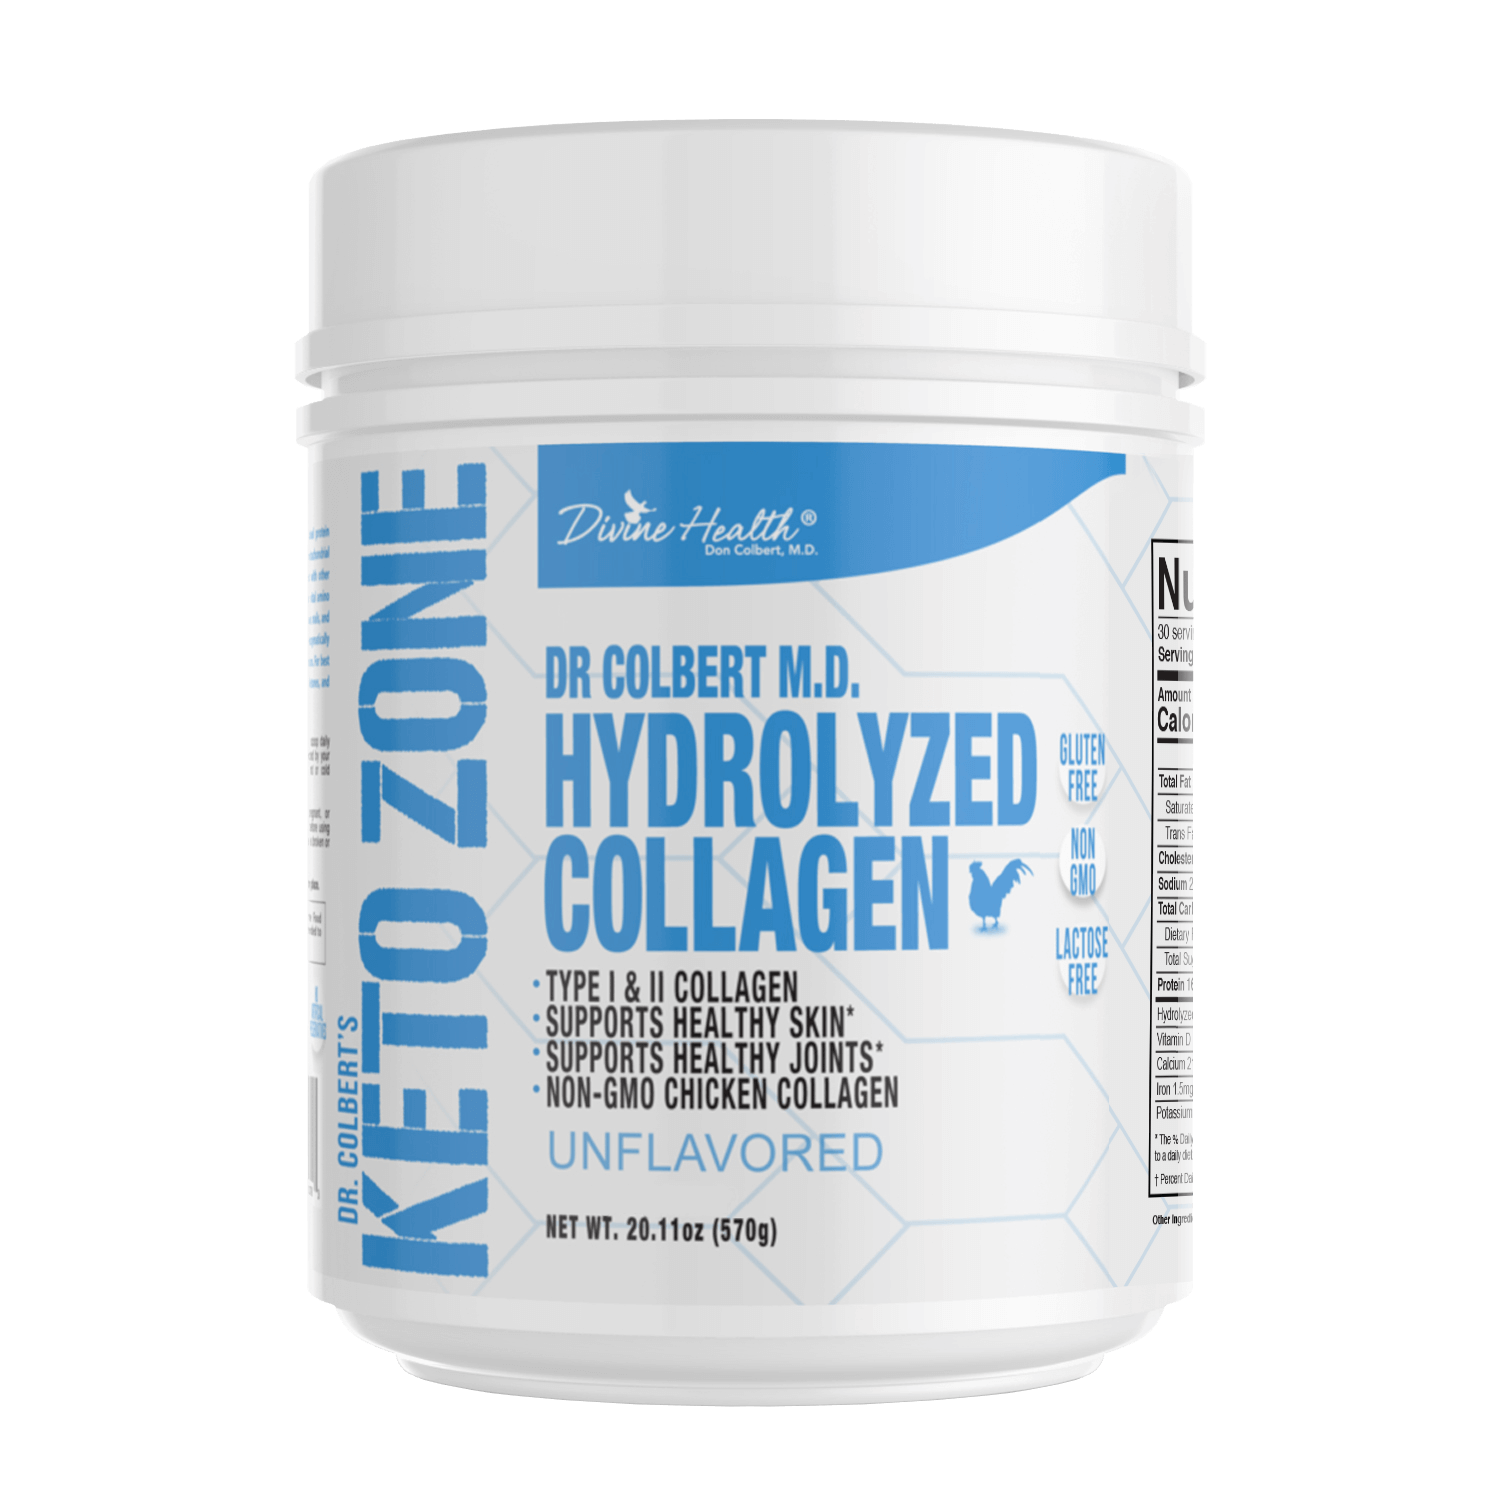 hydrolyzed collagen by vitadirect reviews